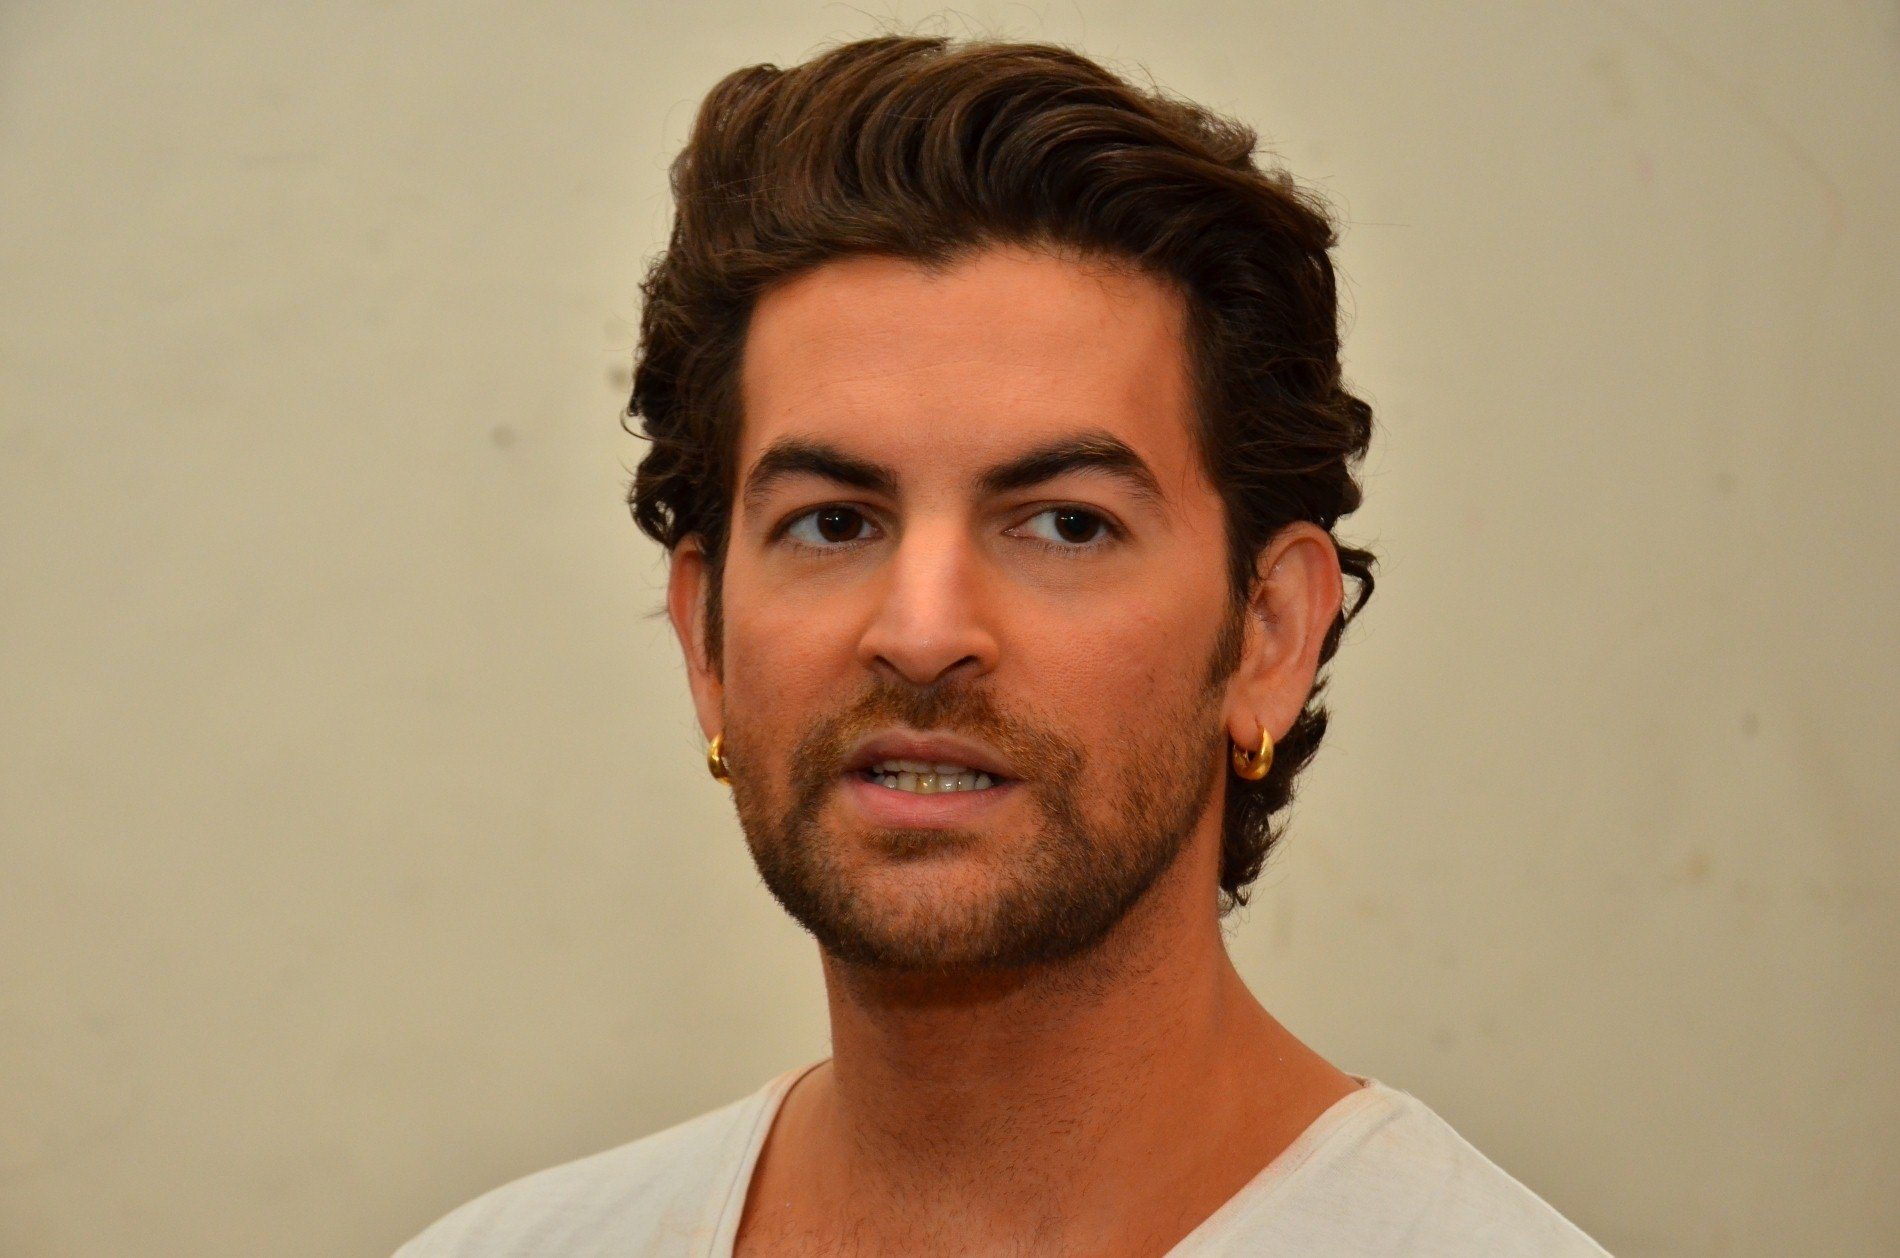 Actor Neil Nitin Mukesh during his debut shoot for PETA (People for the Ethical Treatment of Animals)